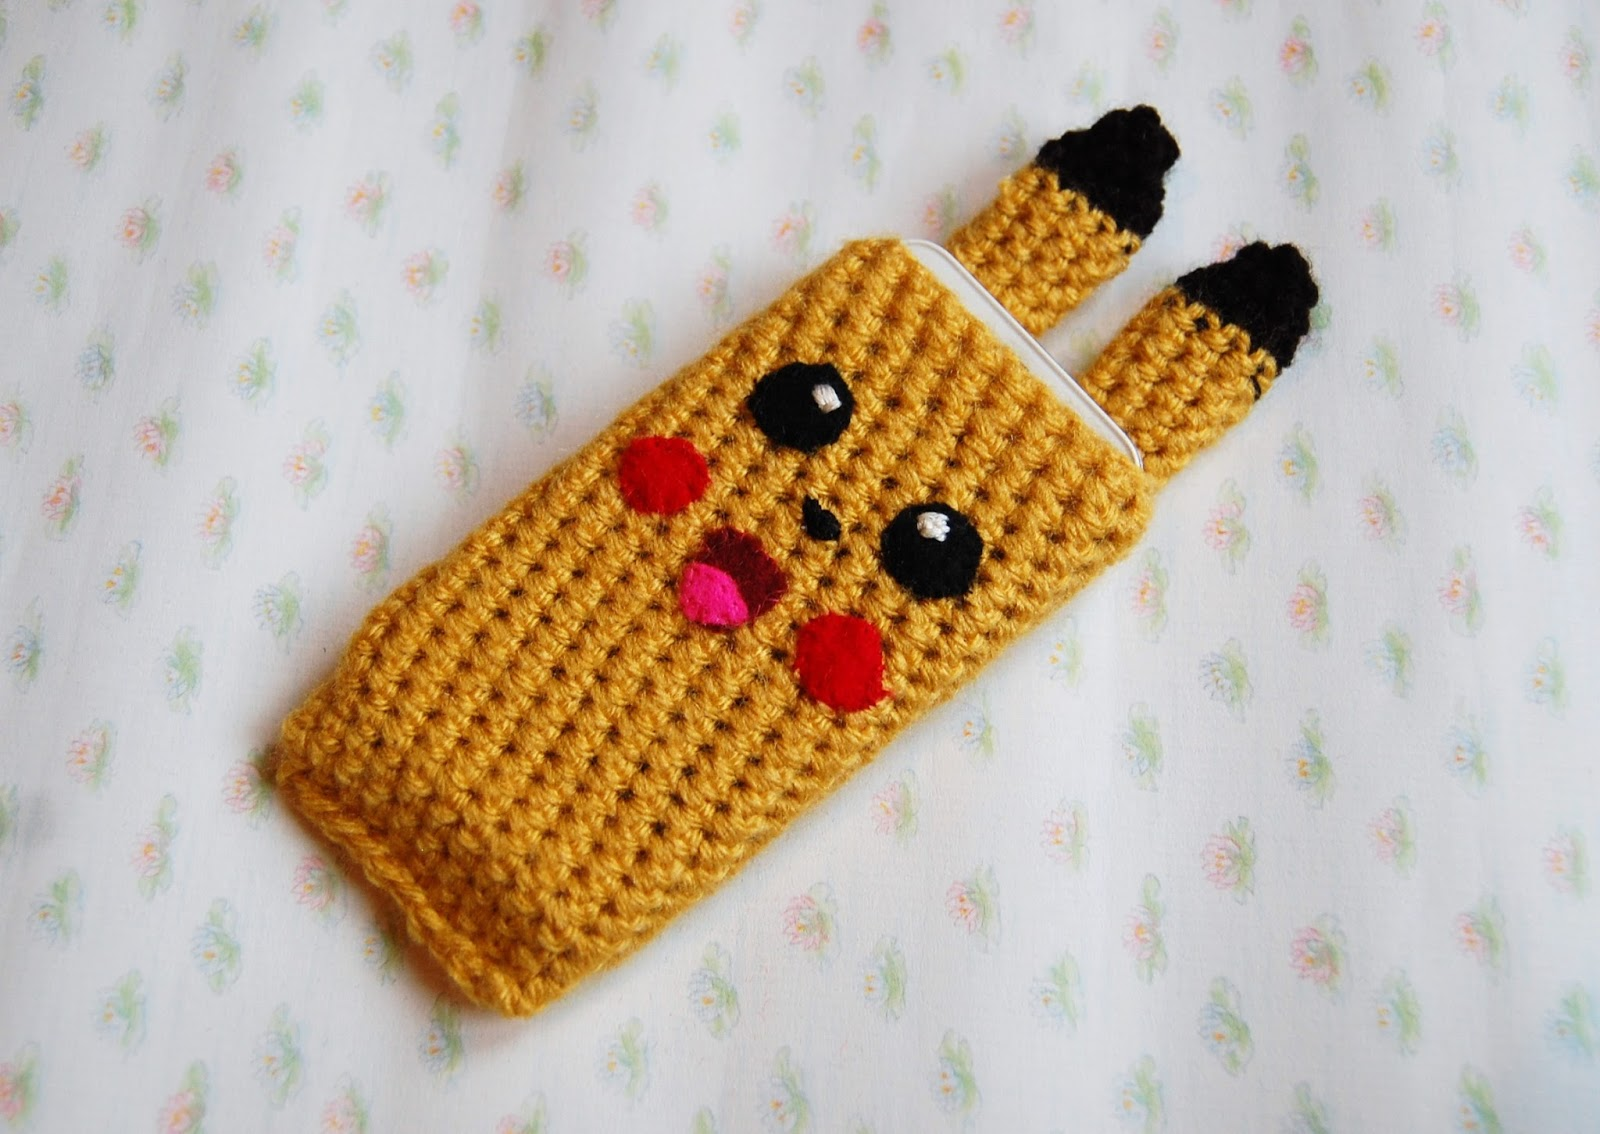 Amigurumi Pokemon Patterns Free : The geeky knitter pikachu phone cover free crochet pattern